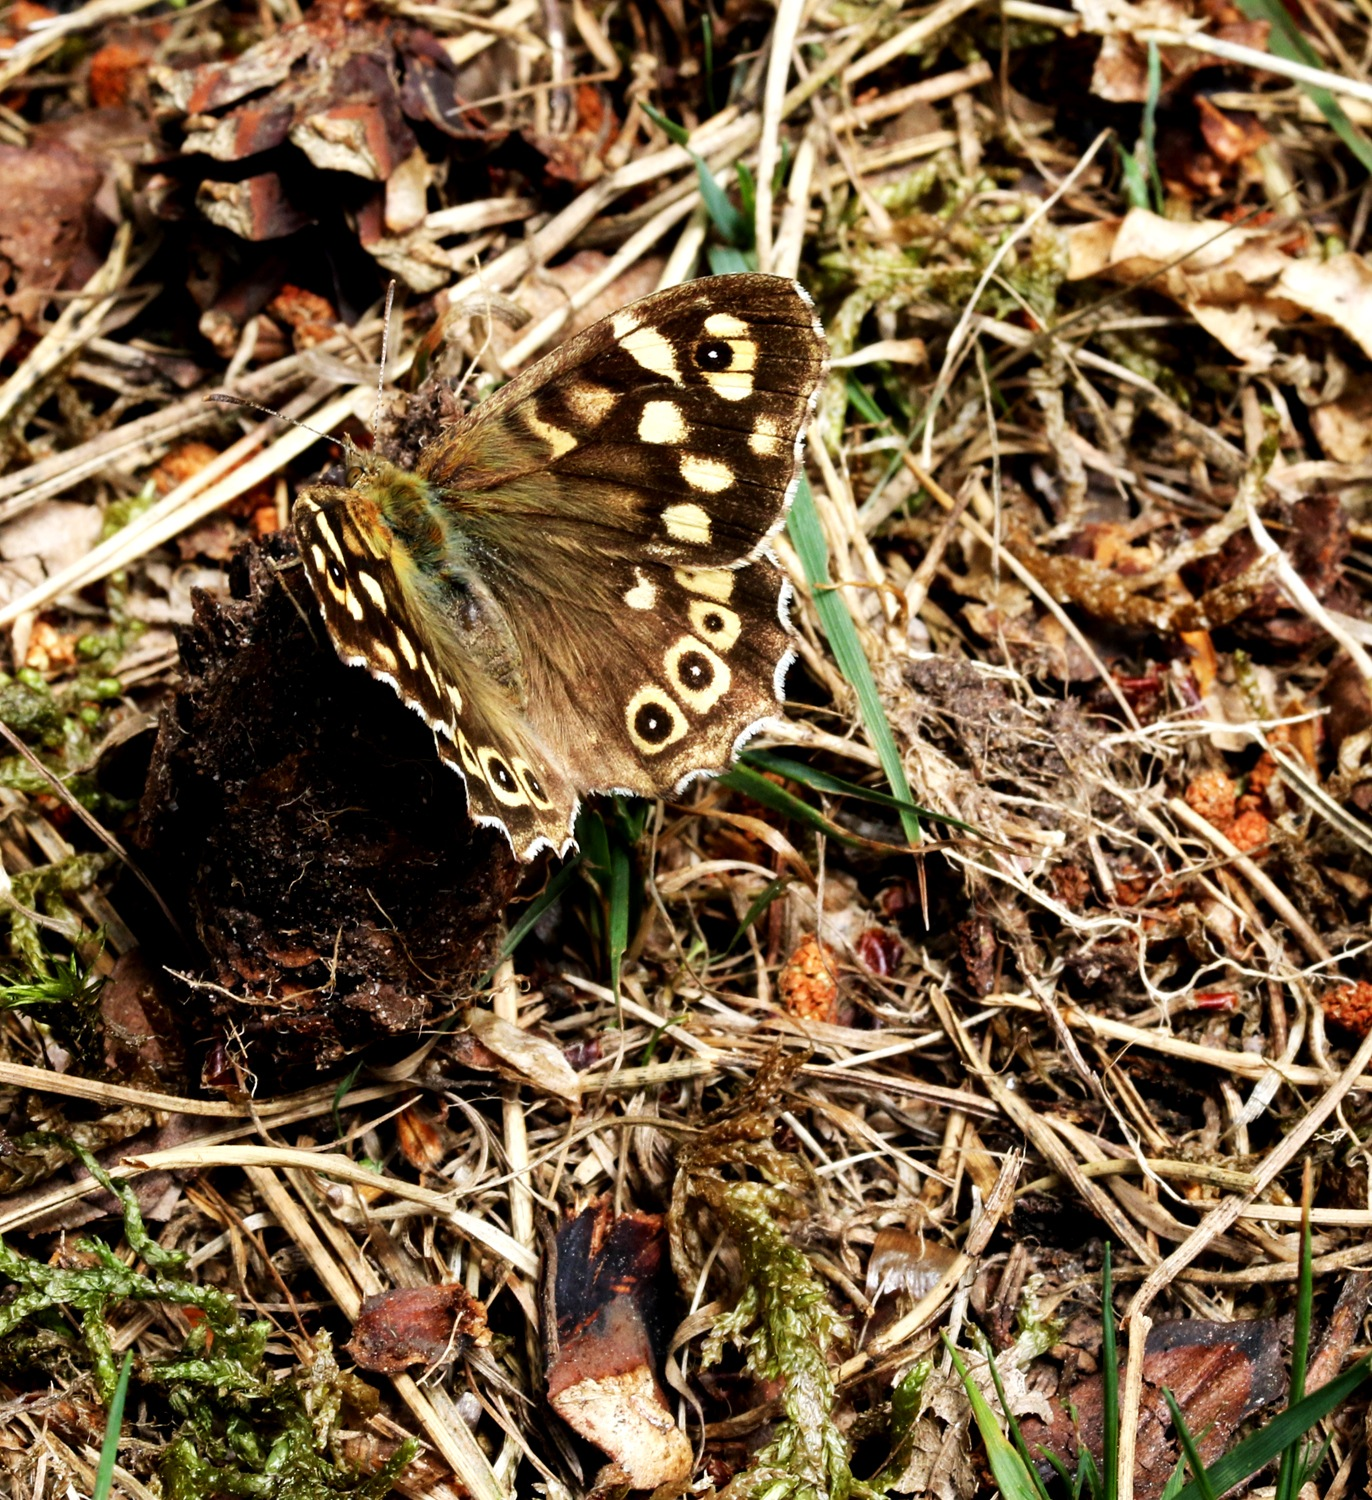 Speckled Wood by geoff.hall.12